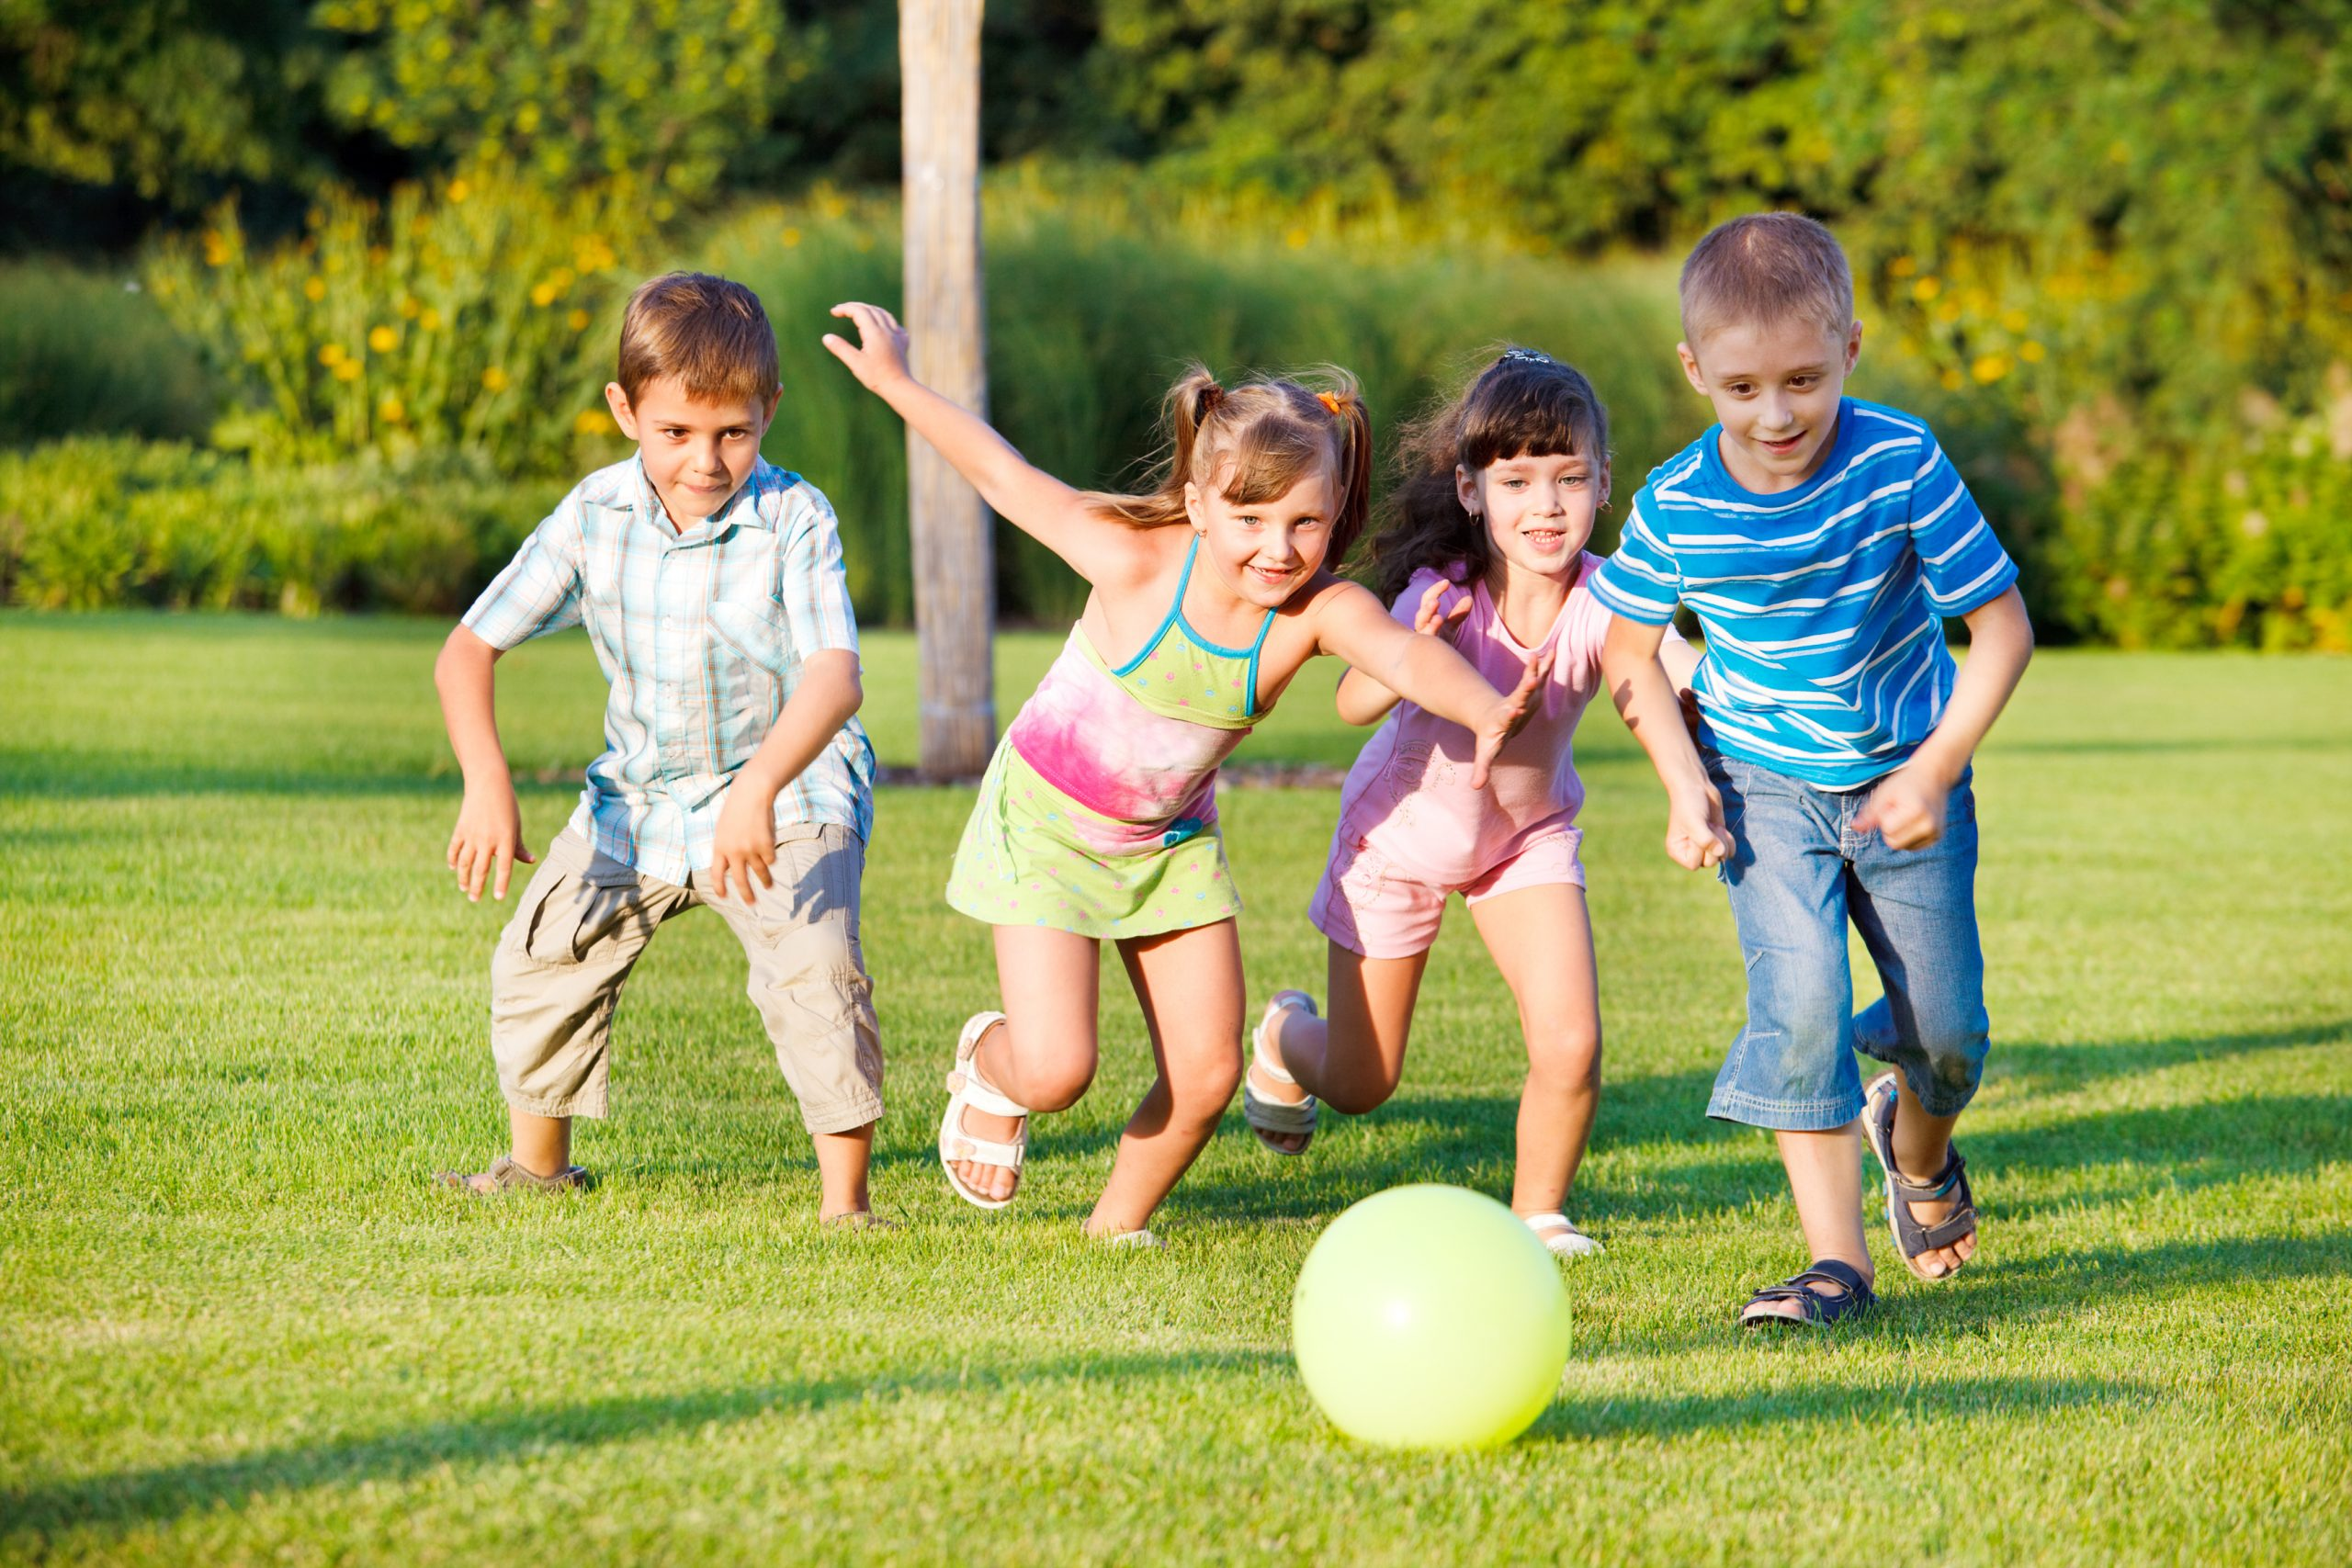 Jaxplay's 5 Benefits of Playing Outdoors